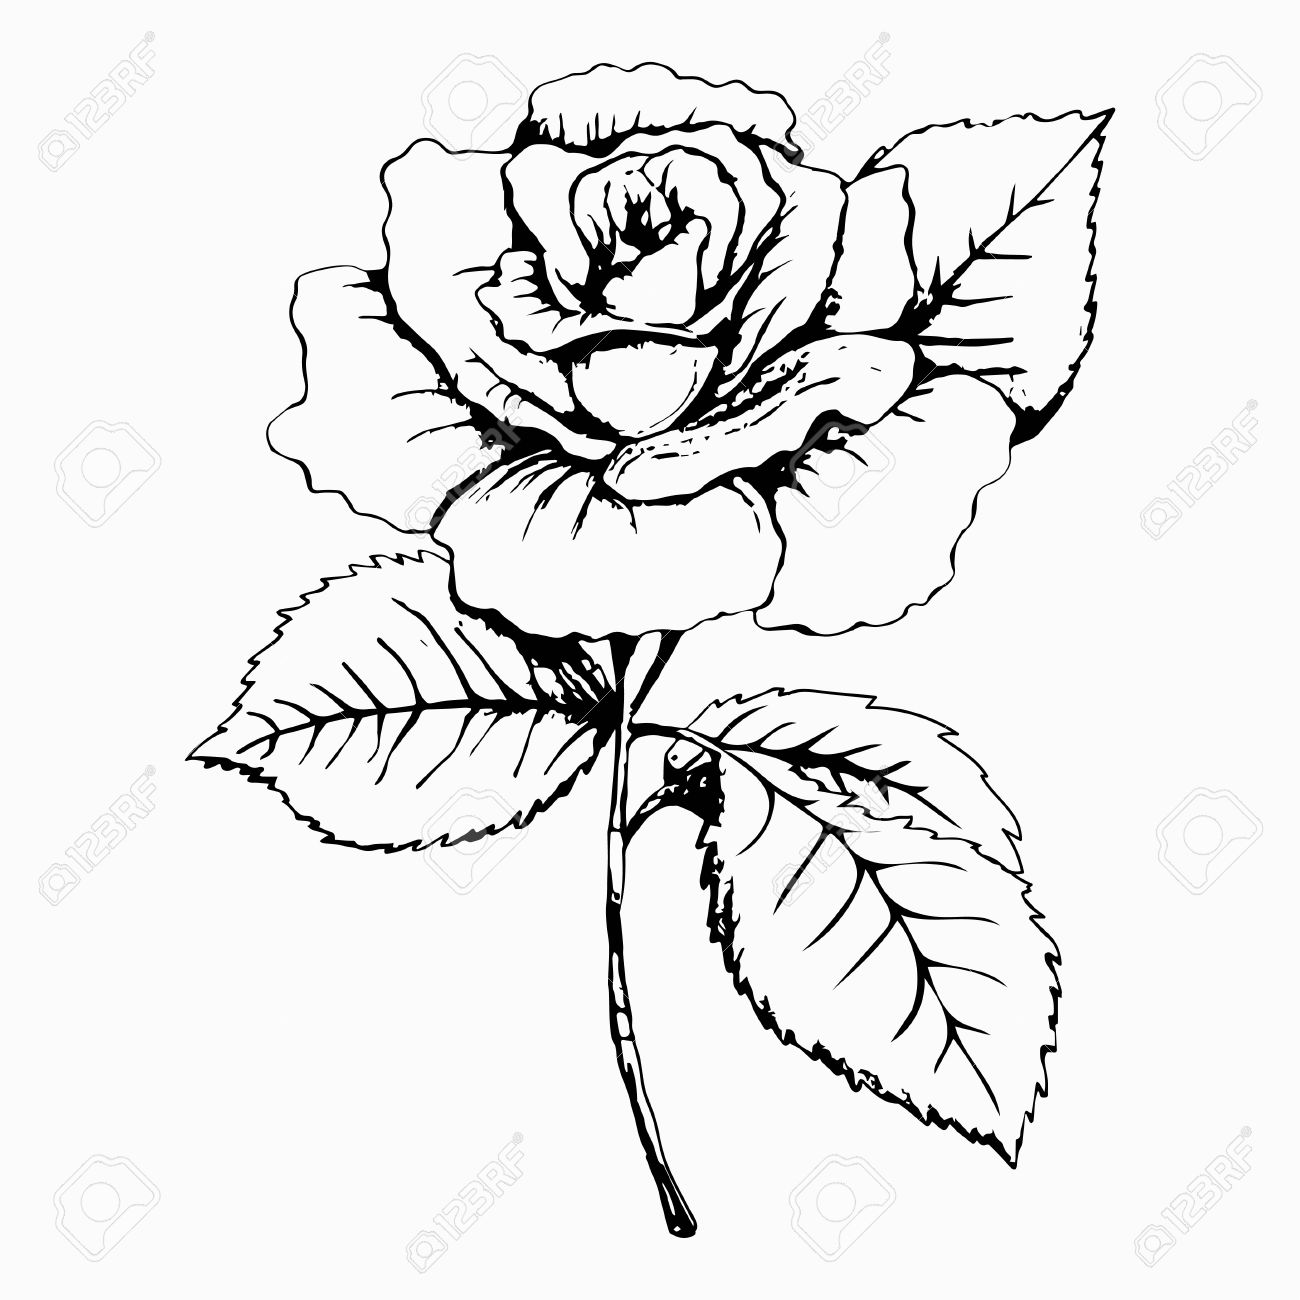 Flower Rose Sketch Painting Hand Drawing White Bud Petals